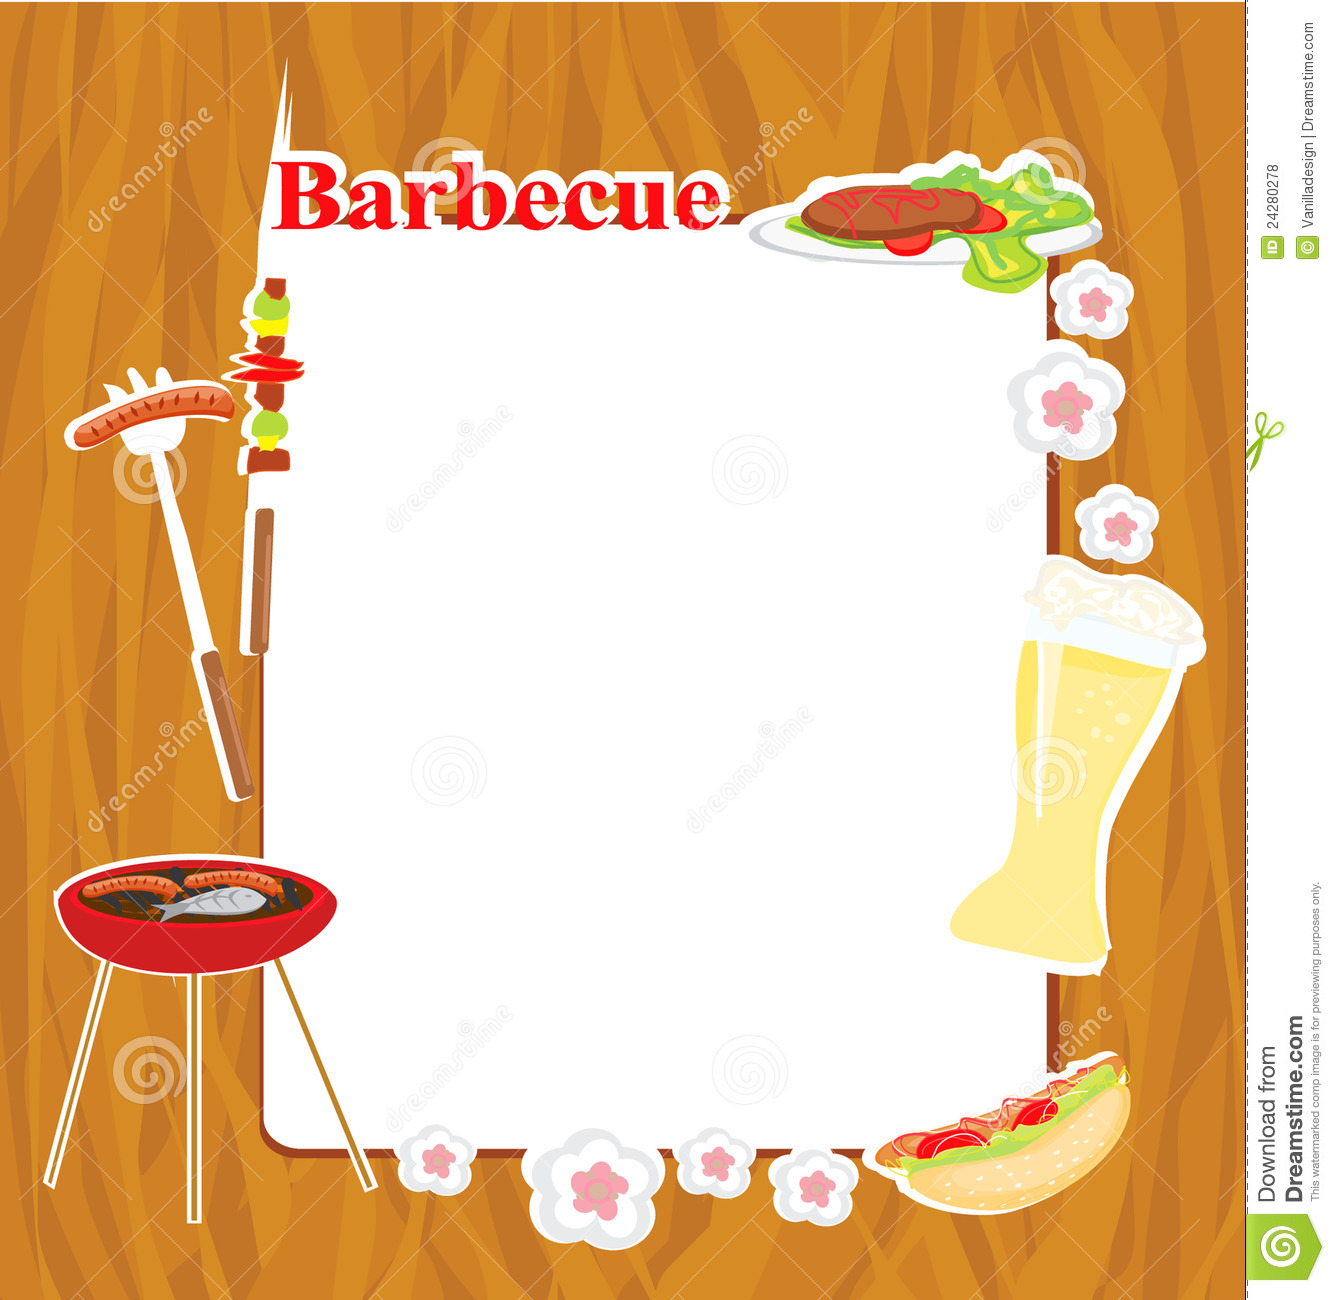 Com royalty free stock photos barbecue party invitation image24280278